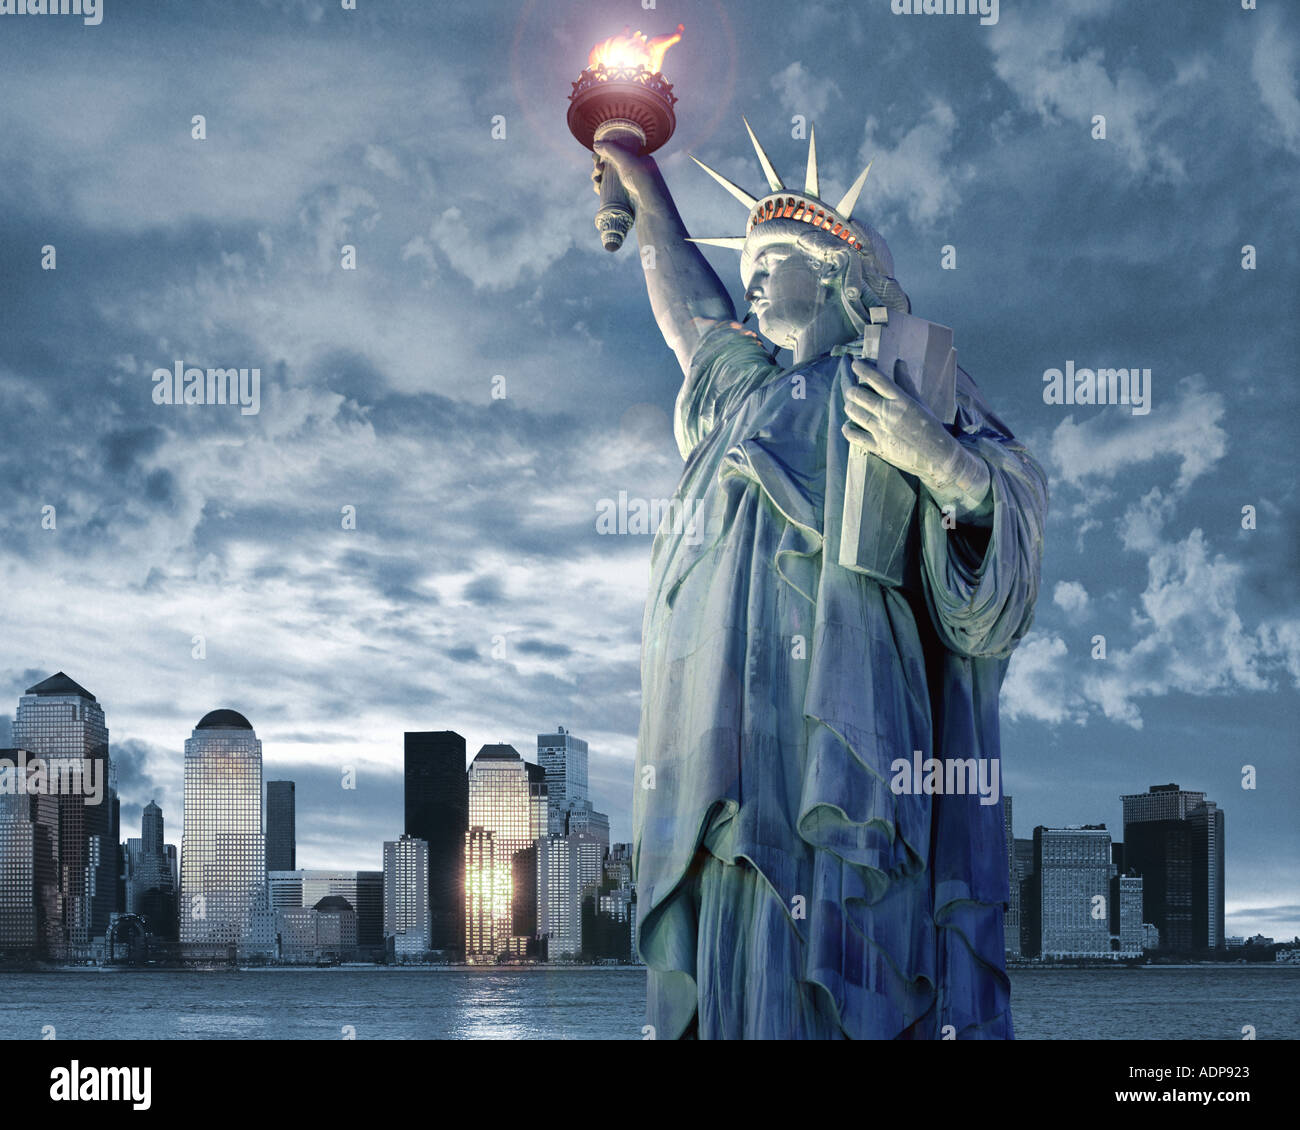 USA - NEW YORK: Travel Concept Stock Photo